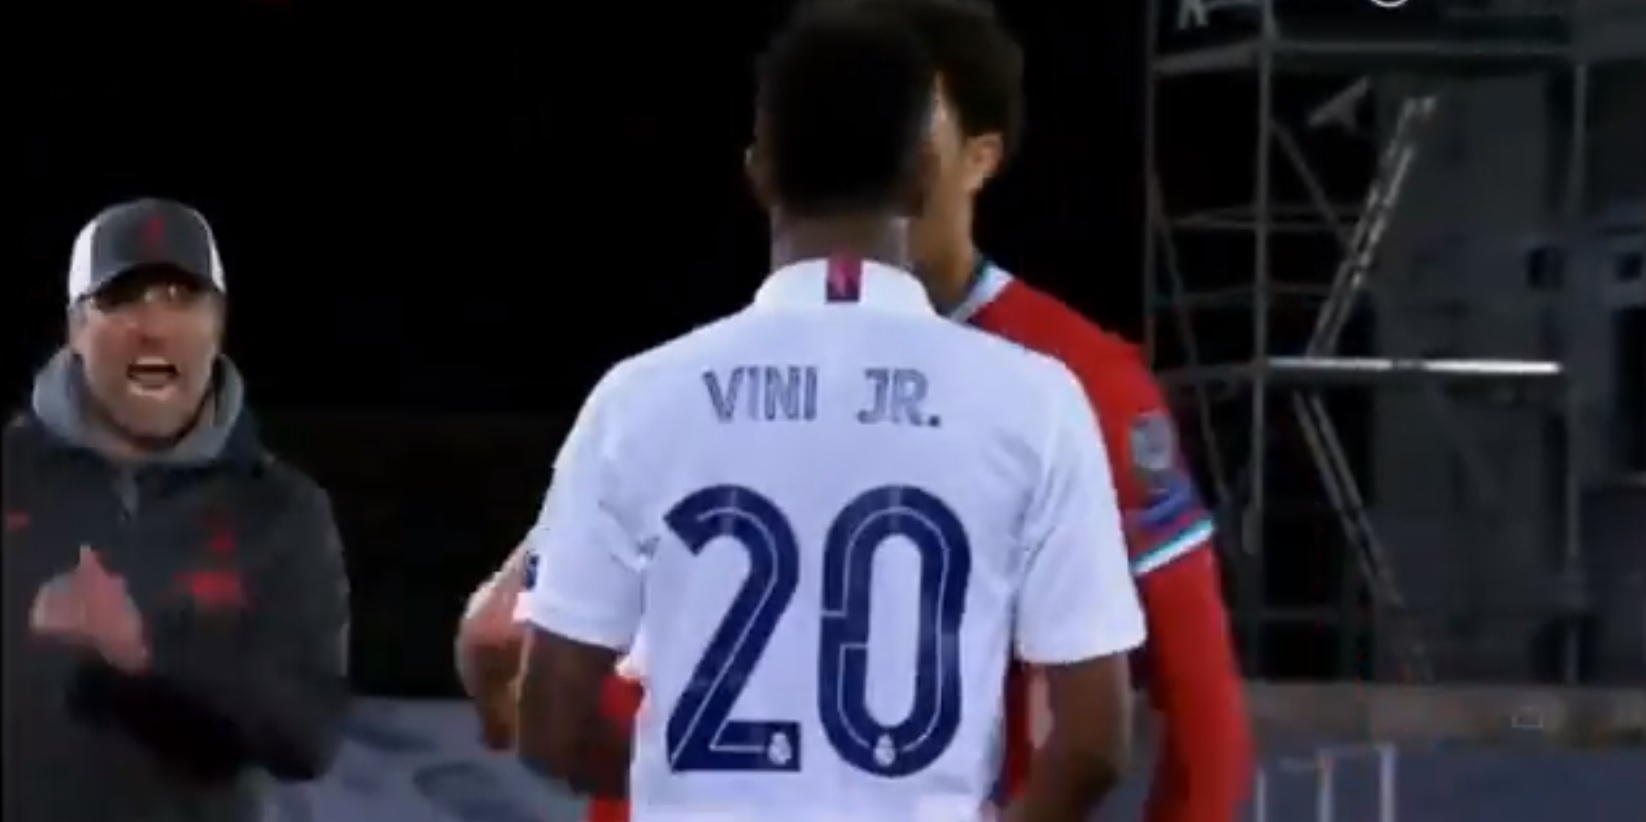 (Video) Klopp rushes to break up potential scuffle after Vinicius shoves Trent